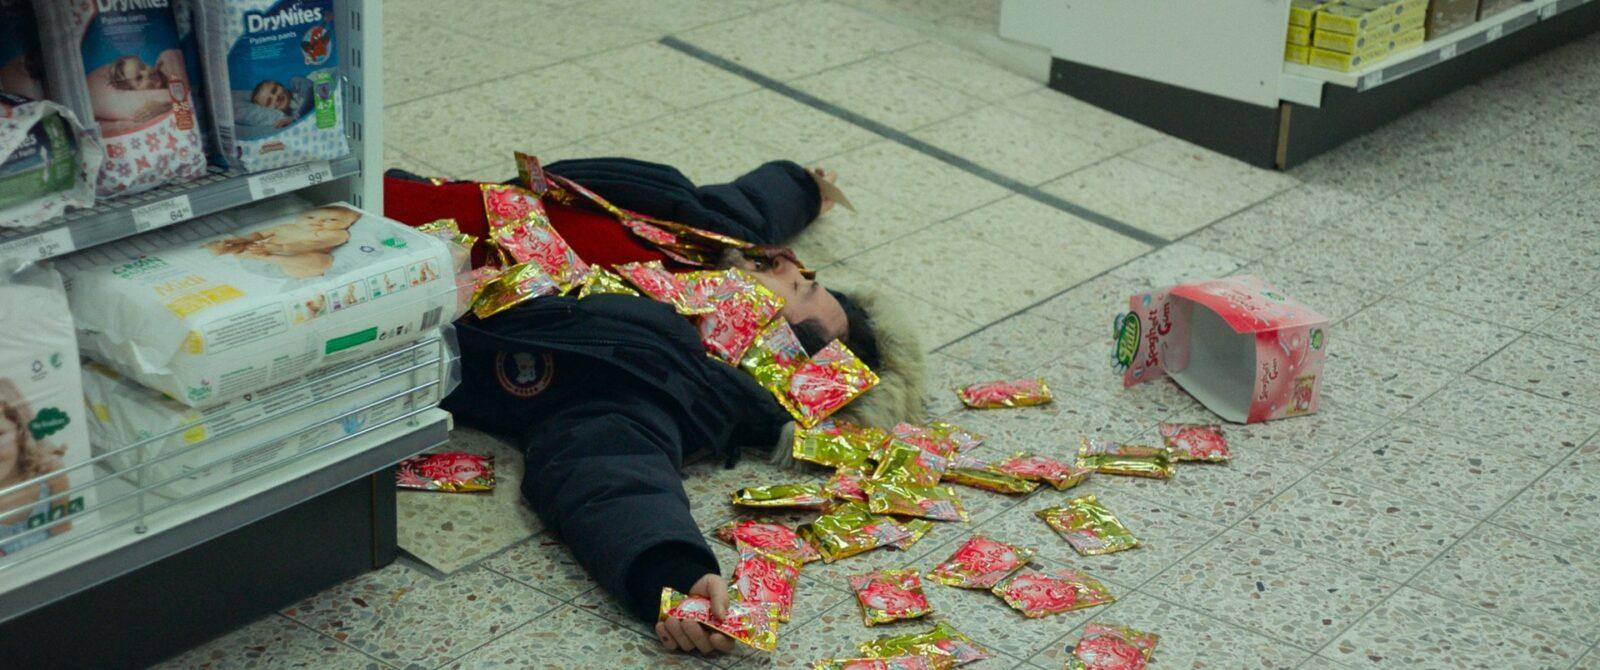 A man that fell over with a bunch of candies on the floor.